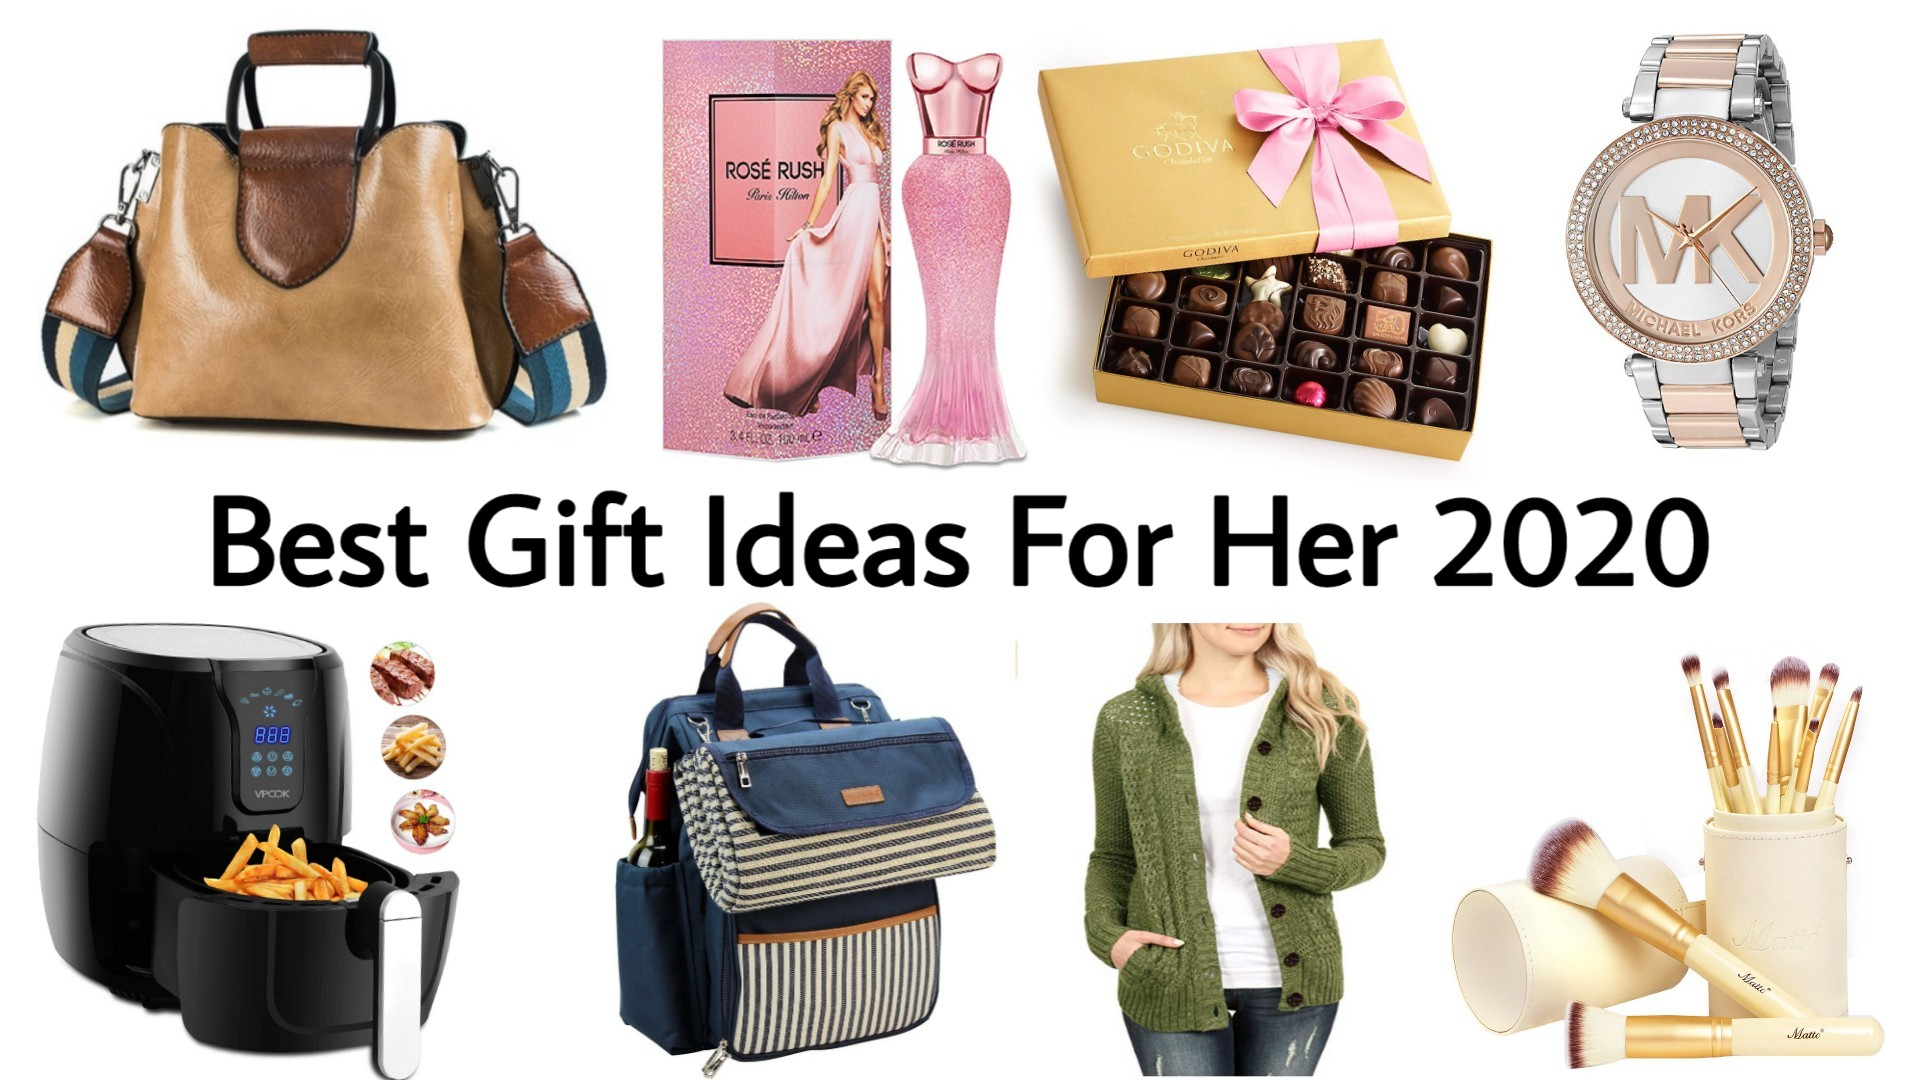 Top Christmas Gifts For Her 2020 Best Christmas Gifts for Her 2020 | Top Birthday Gifts for Wife